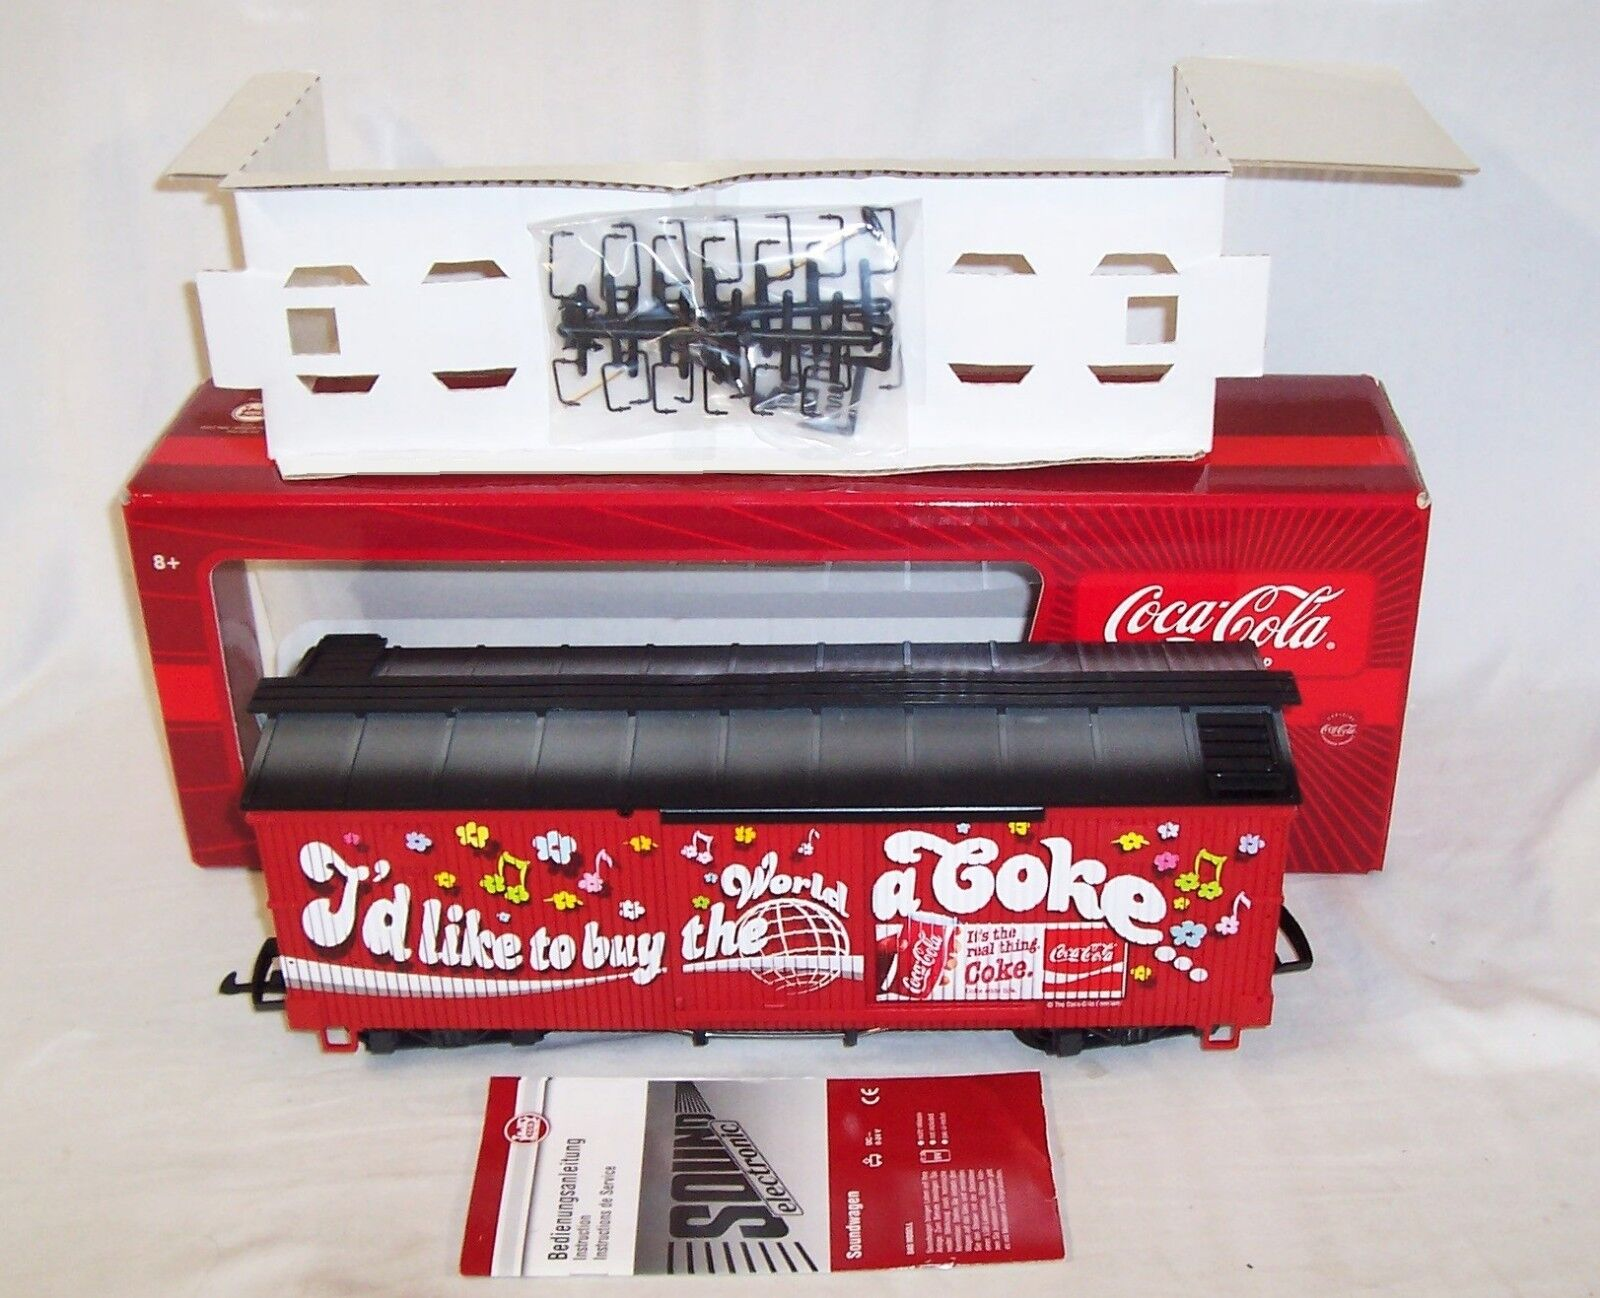 NEW LGB 46672 COCA COLA MUSICAL SOUND BOXCAR  - I'D LIKE TO BUY THE WORLD A COKE